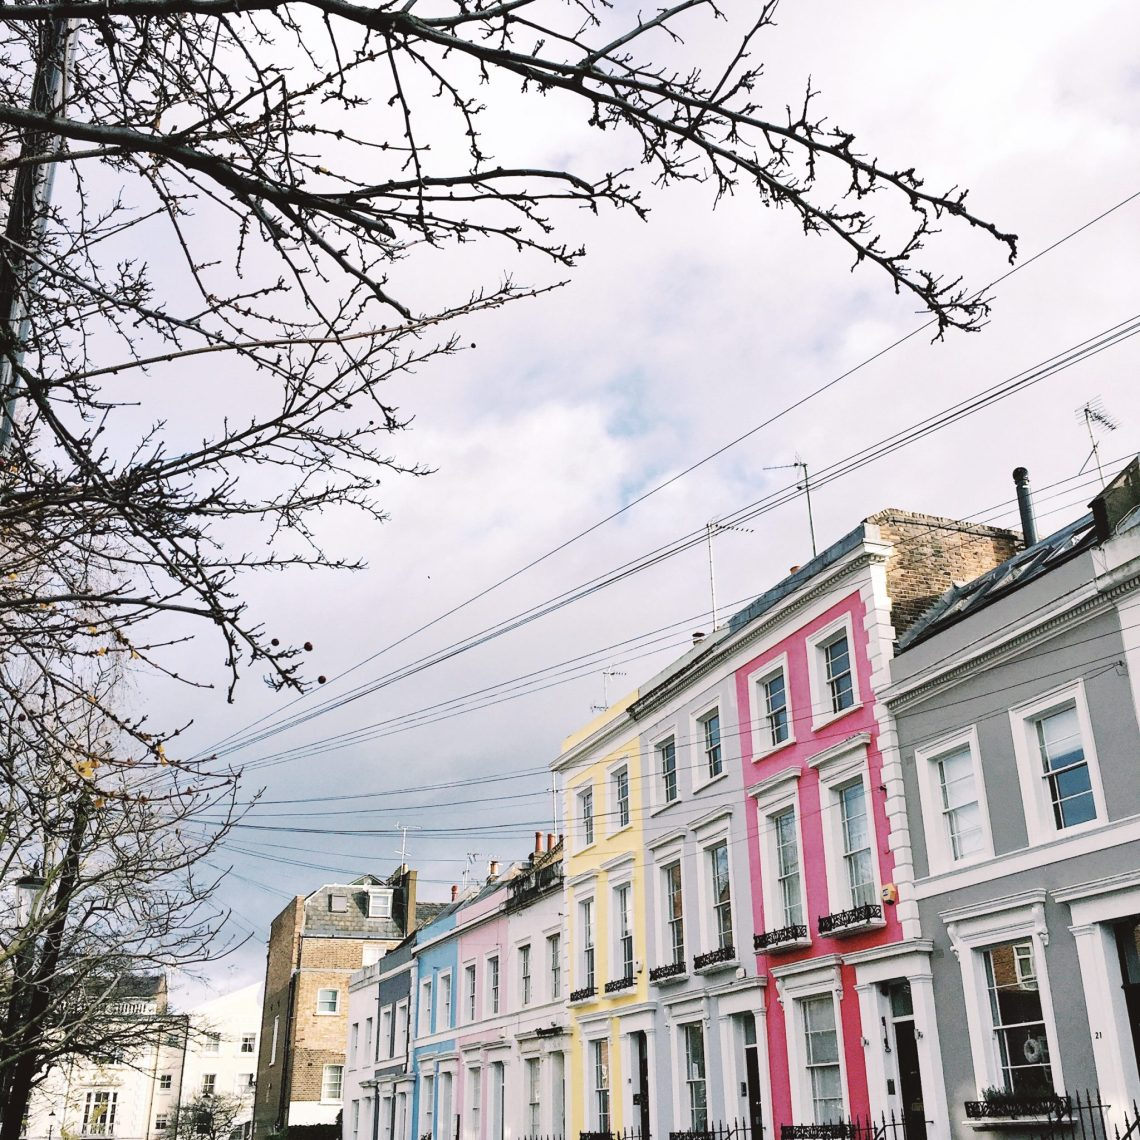 Notting Hill London colorful houses